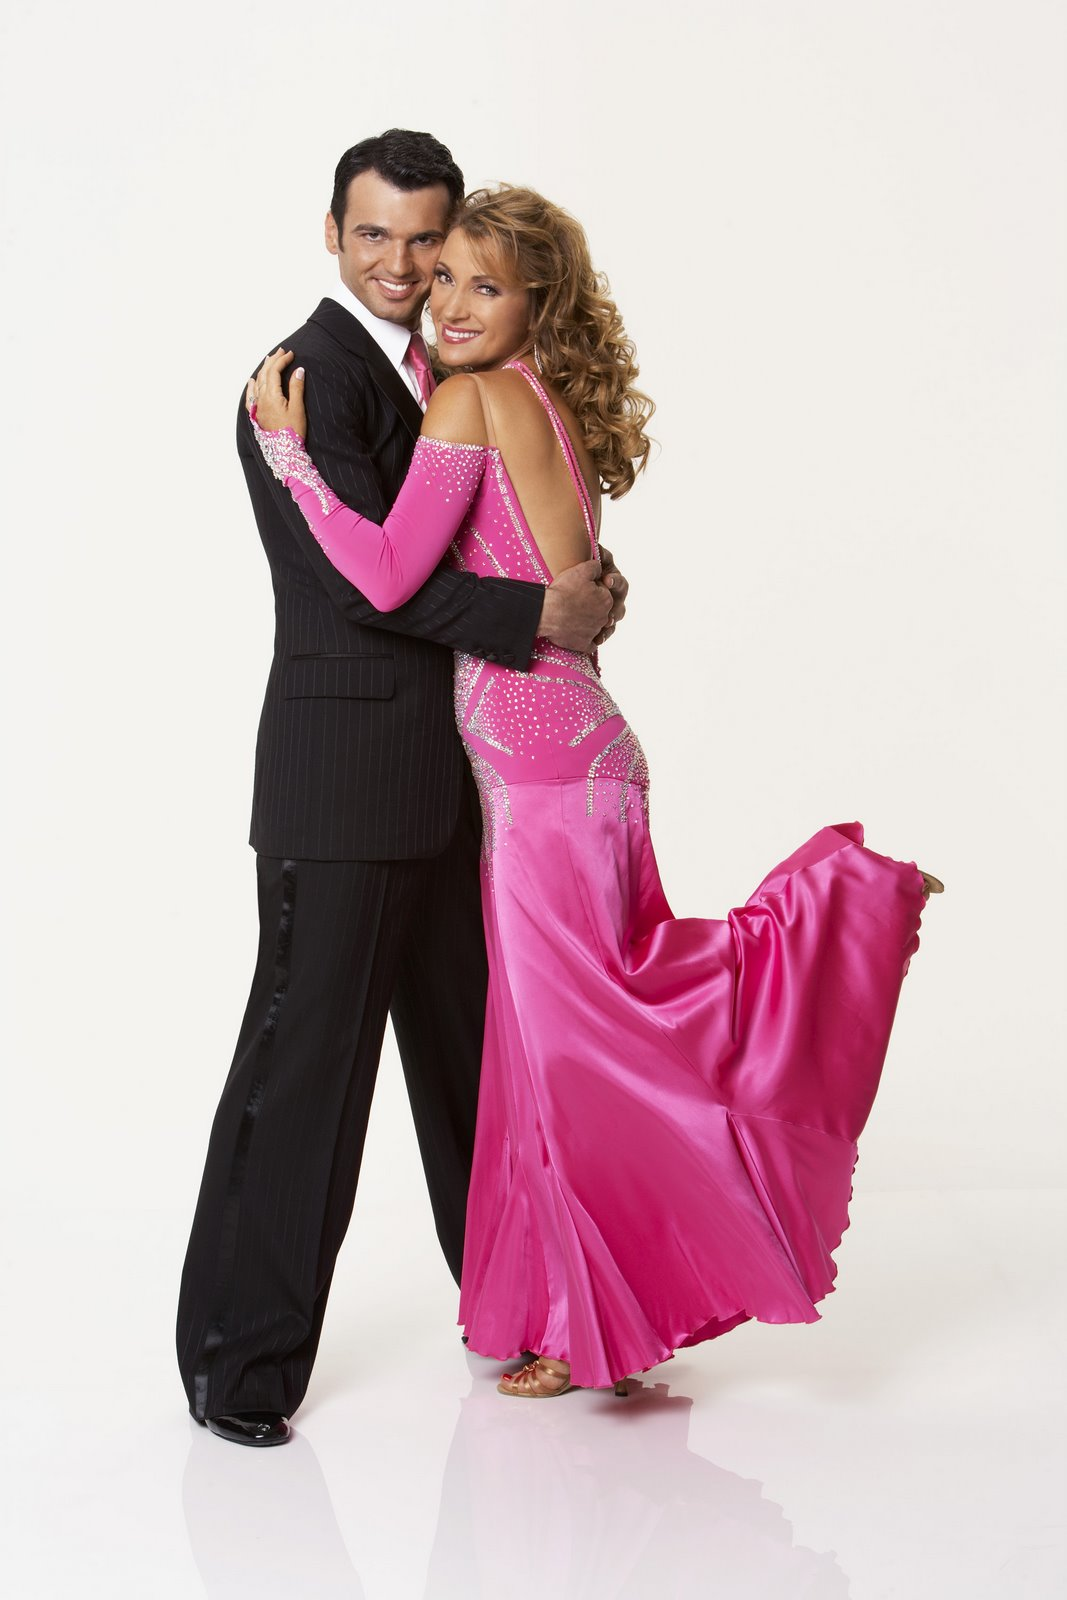 Jane Seymour | Dancing with the Stars Wiki | FANDOM powered by Wikia